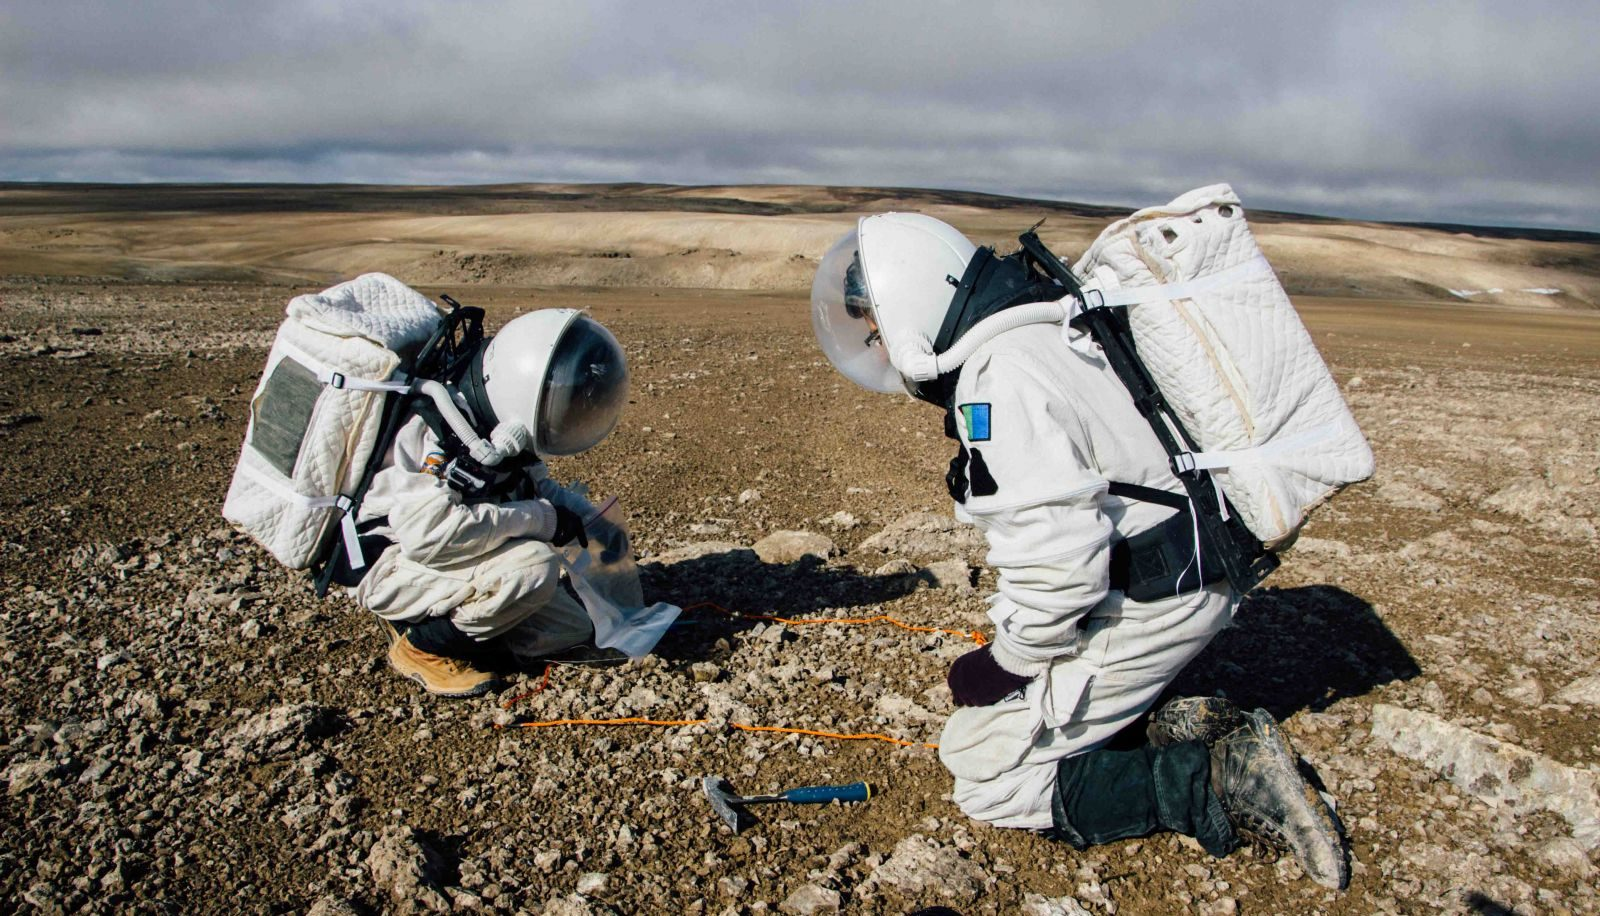 Two Mars 160 crew members collect samples to analyze. Photo Credit: Paul Knightly / Mars Society